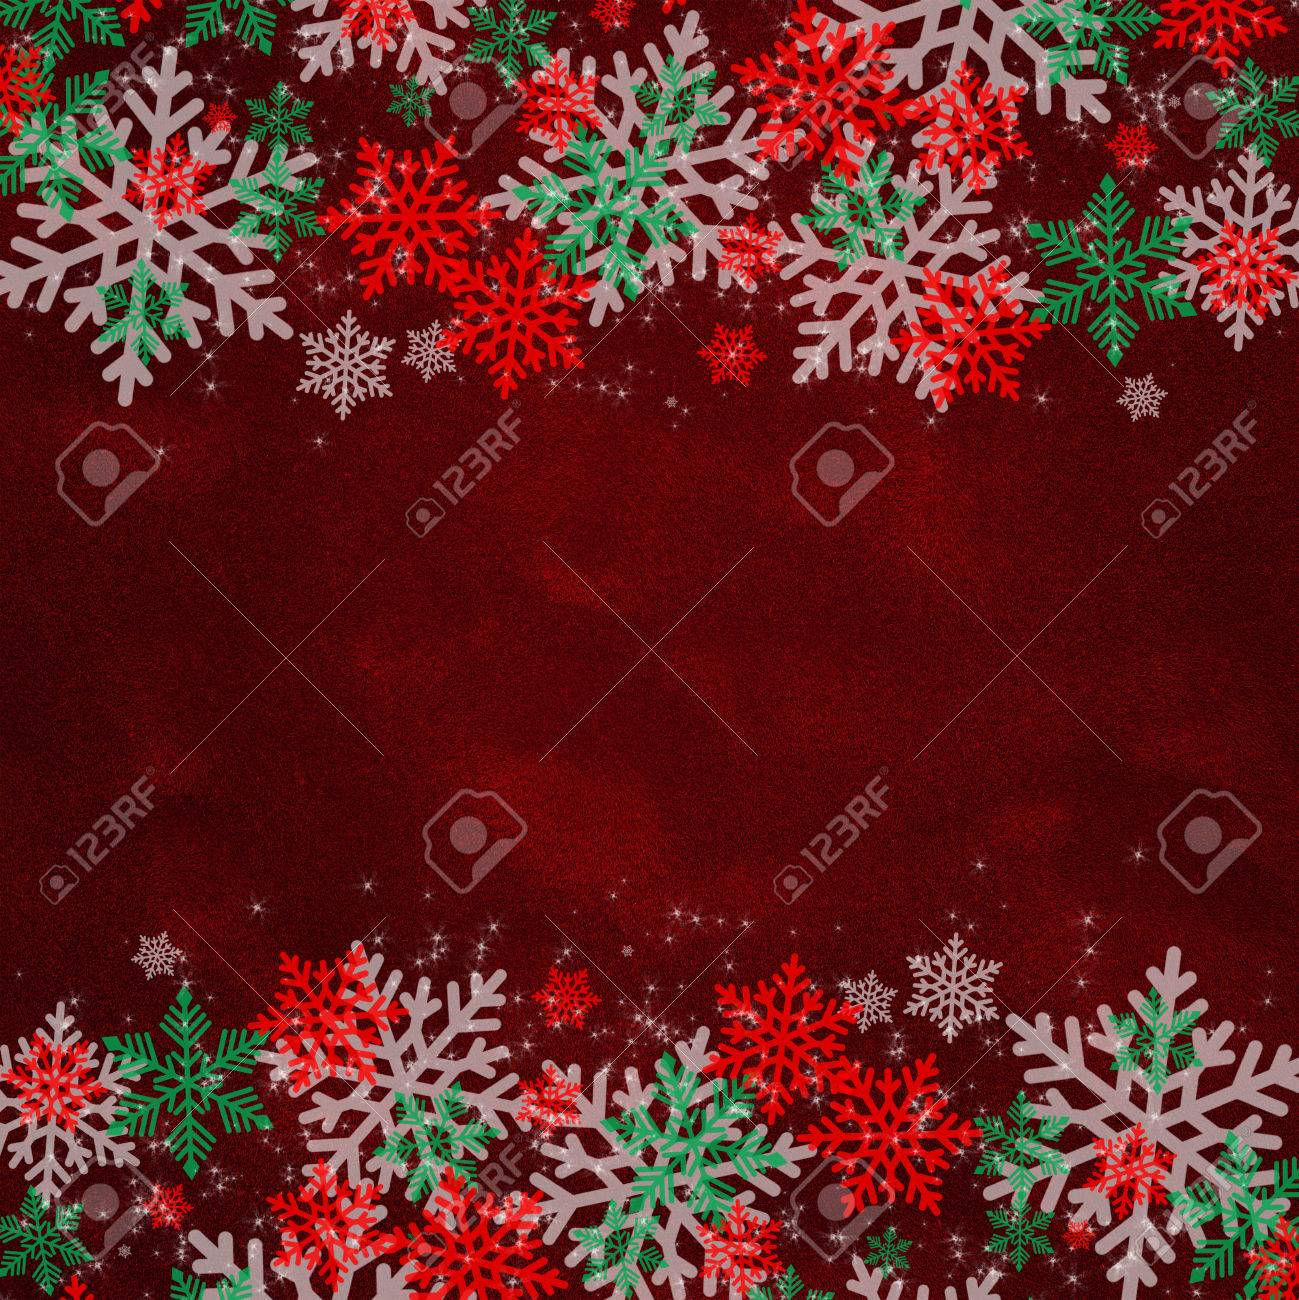 Snowflakes Pattern On Red Velvet Fabric Textured Winter Holidays Stock Photo Picture And Royalty Free Image Image 66394683